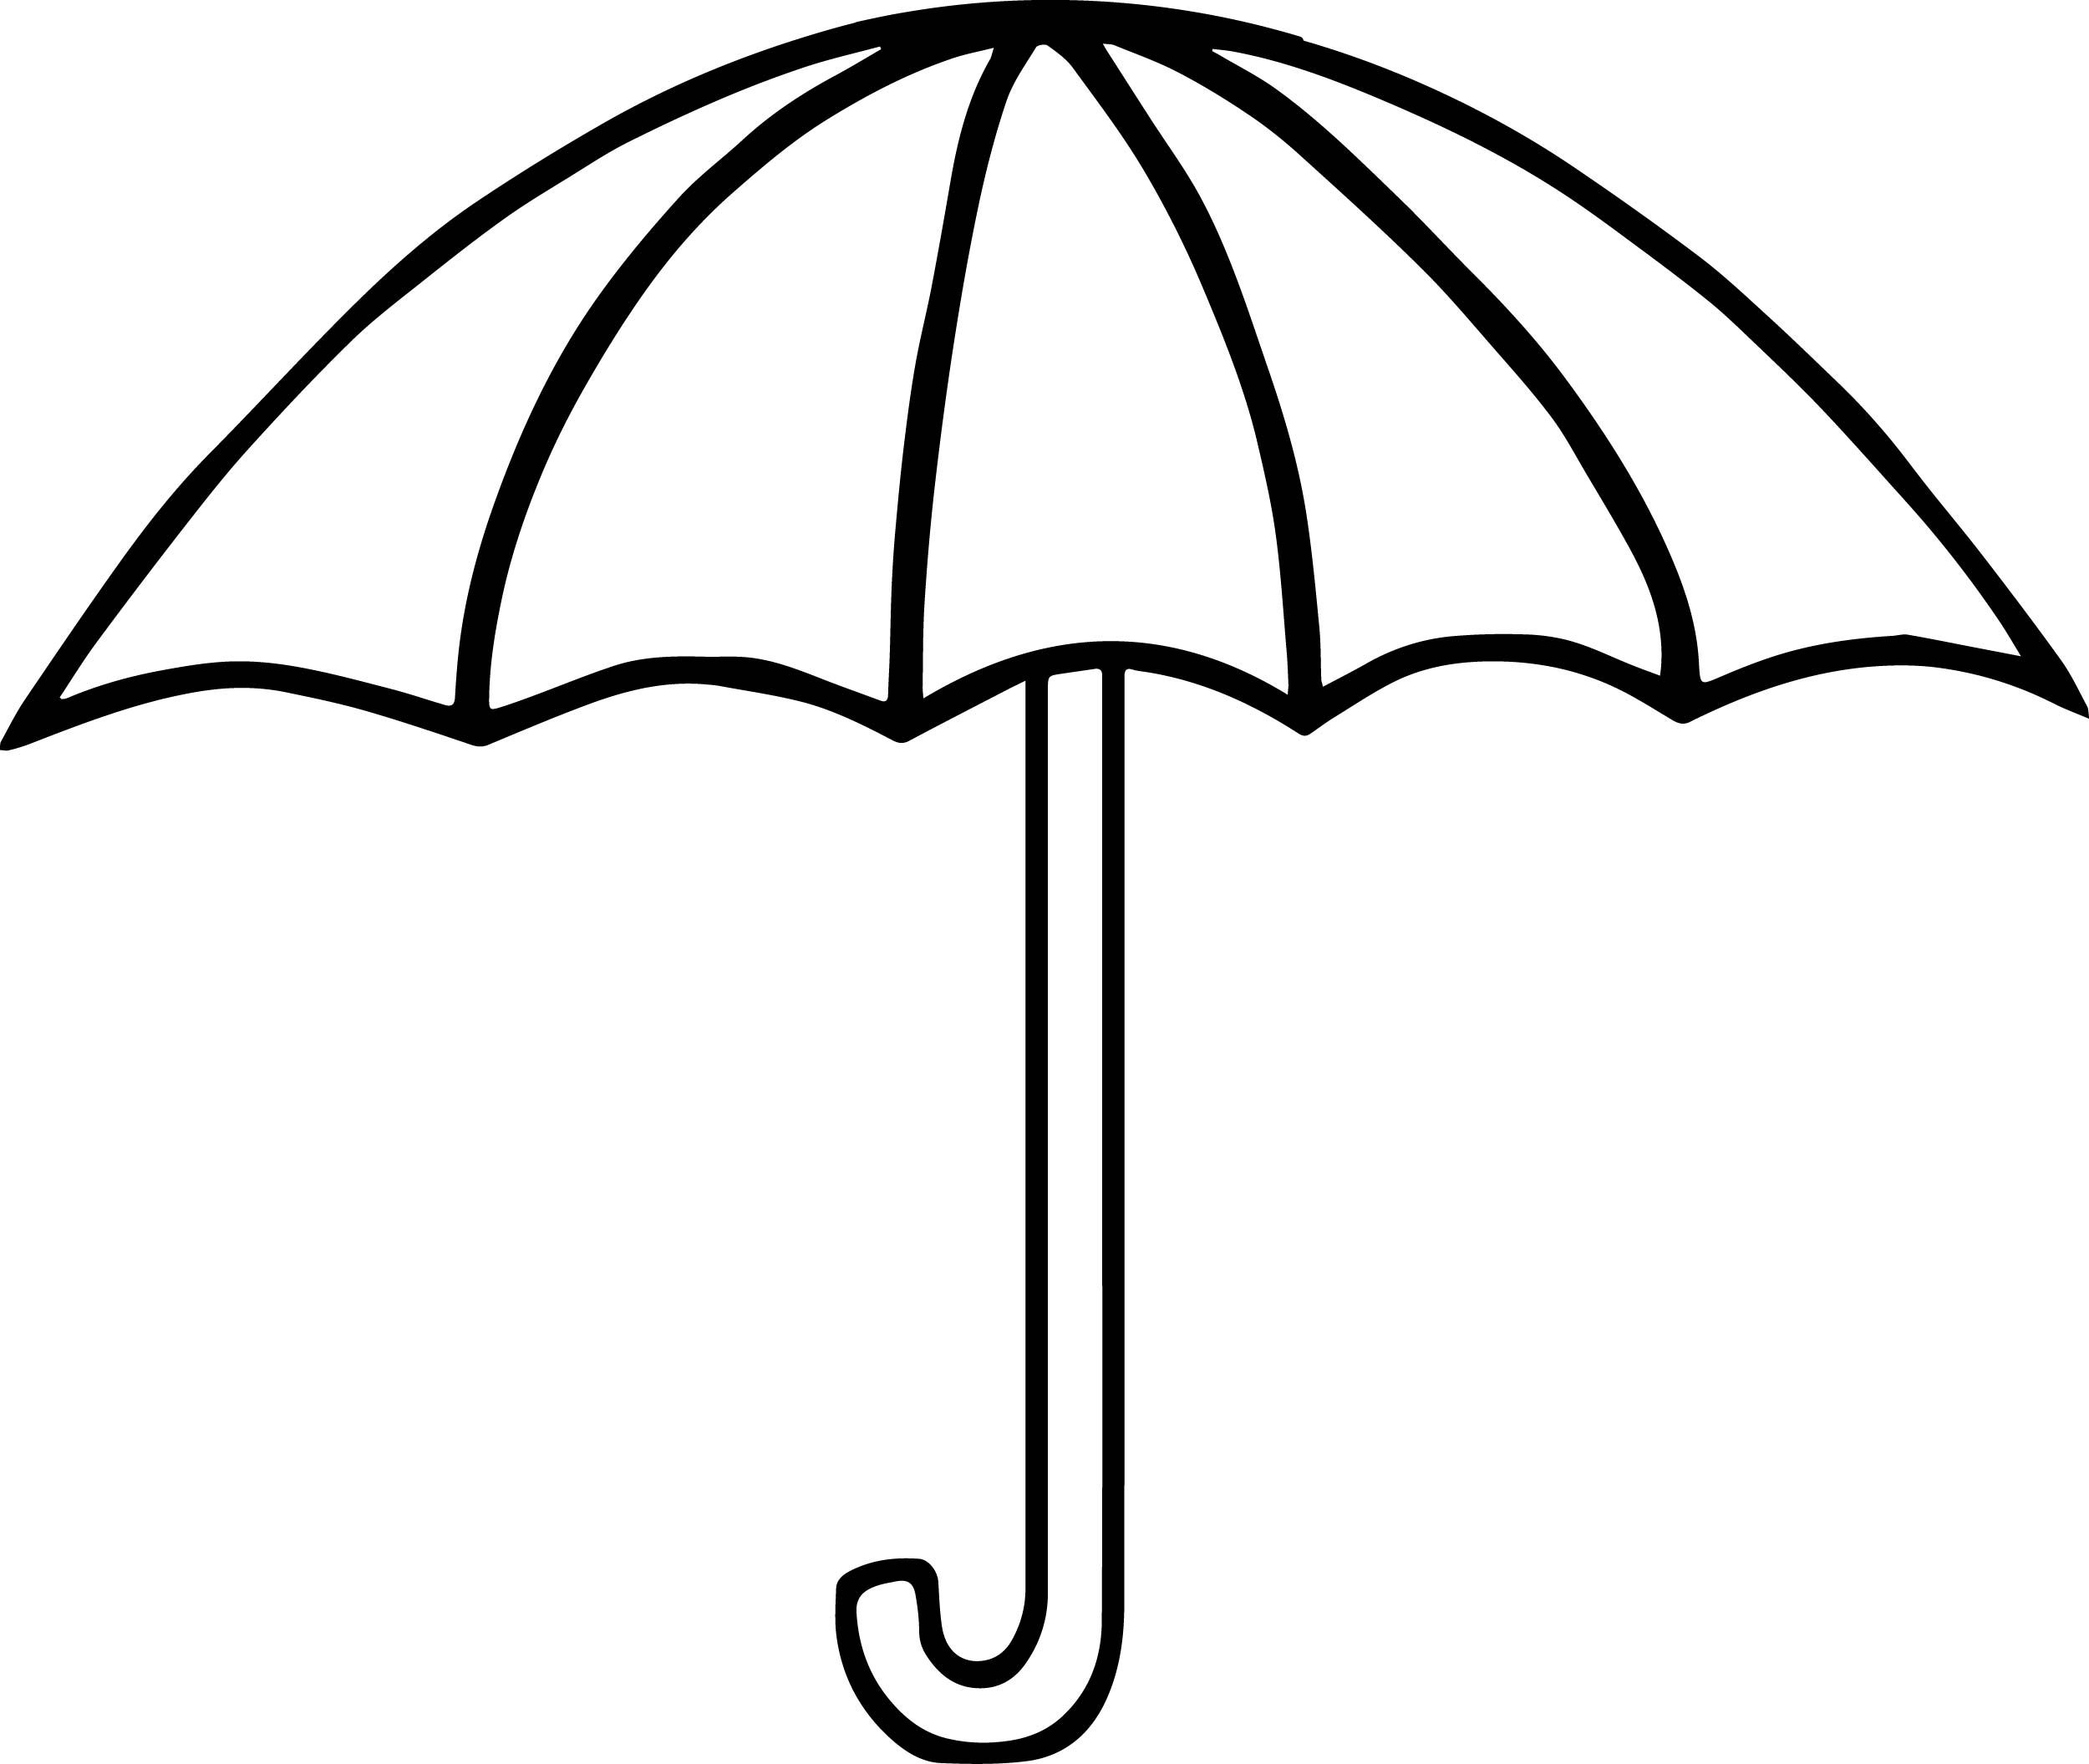 Image Result For Umbrella Colouring